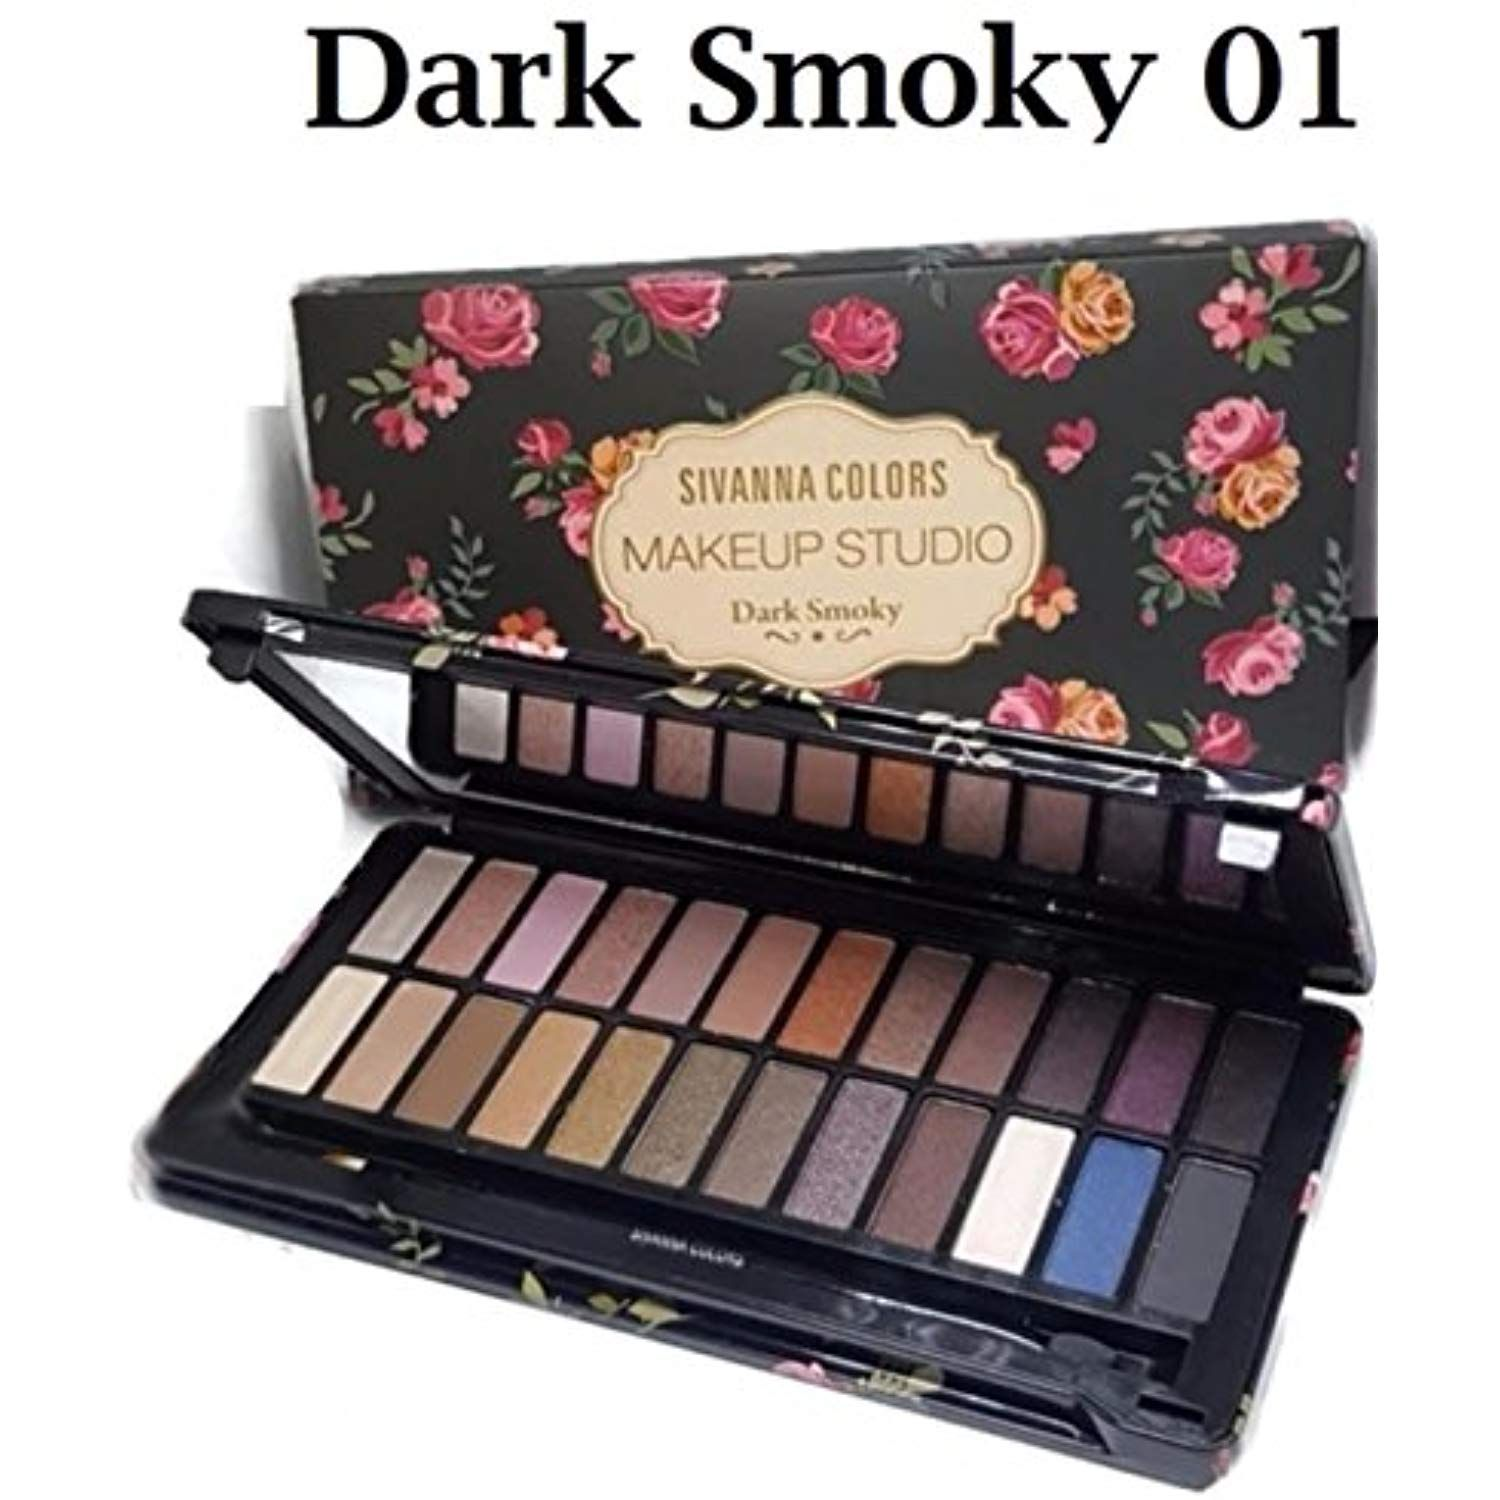 SIVANNA COLORS MAKEUP STUDIO A new 24 color eye shadow